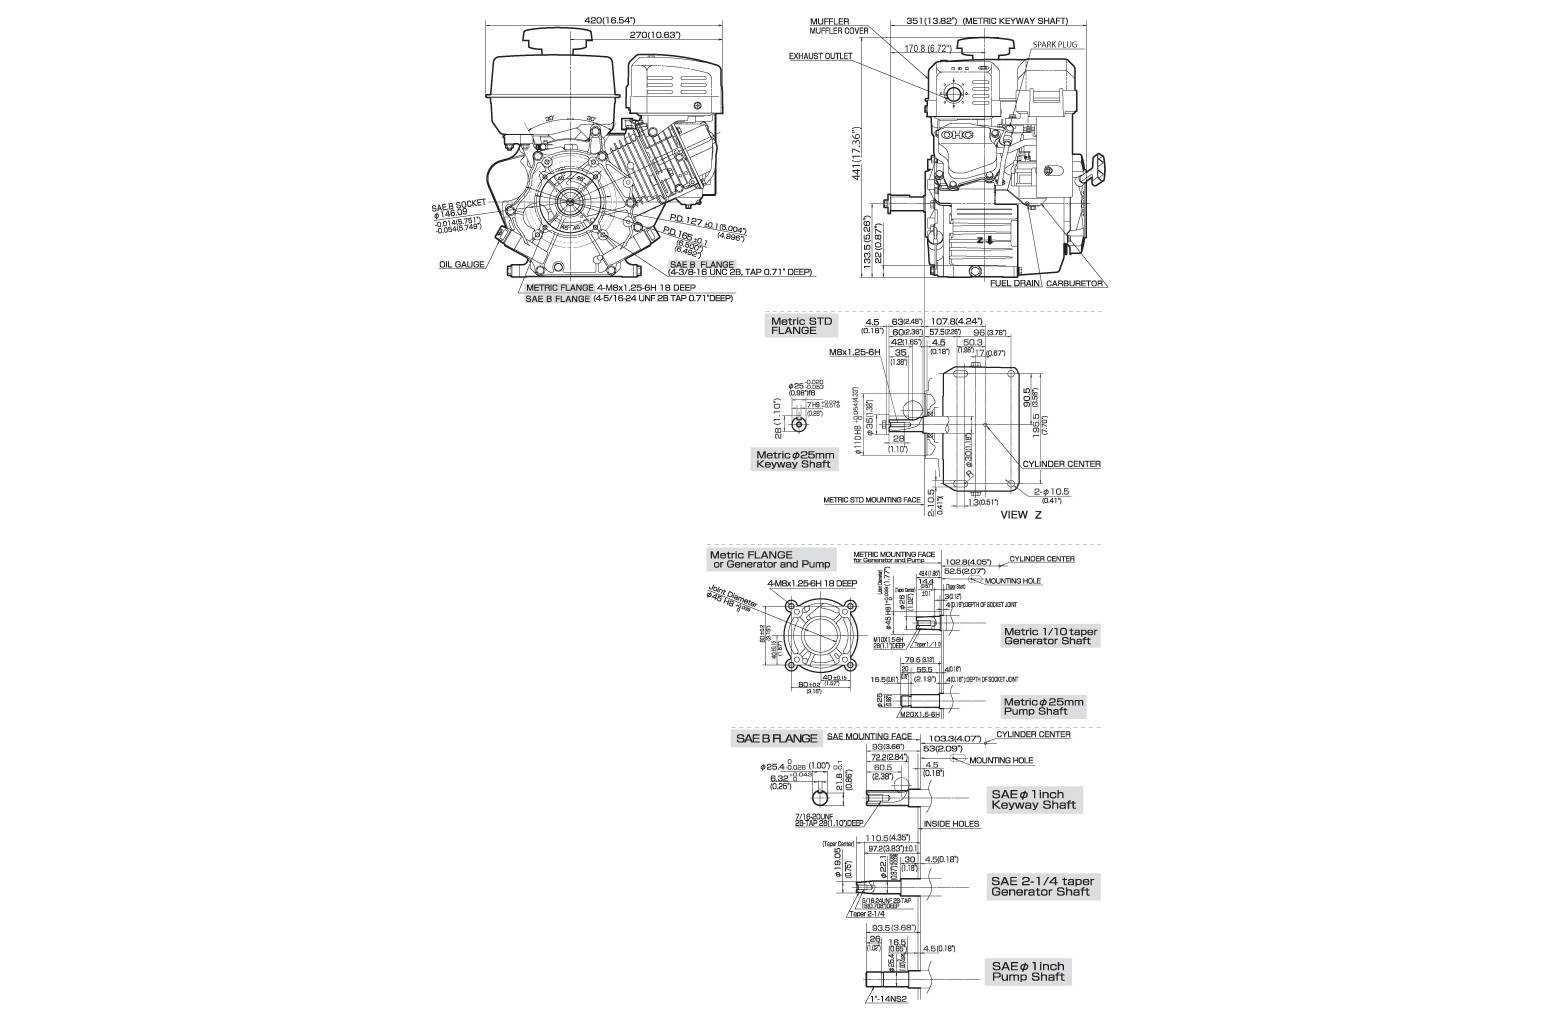 subaru 265cc engine diagram index listing of wiring diagrams robin small engines subaru 265cc engine diagram wiring library2016 robin subaru ex27 for sale in hattiesburg, ms underwood